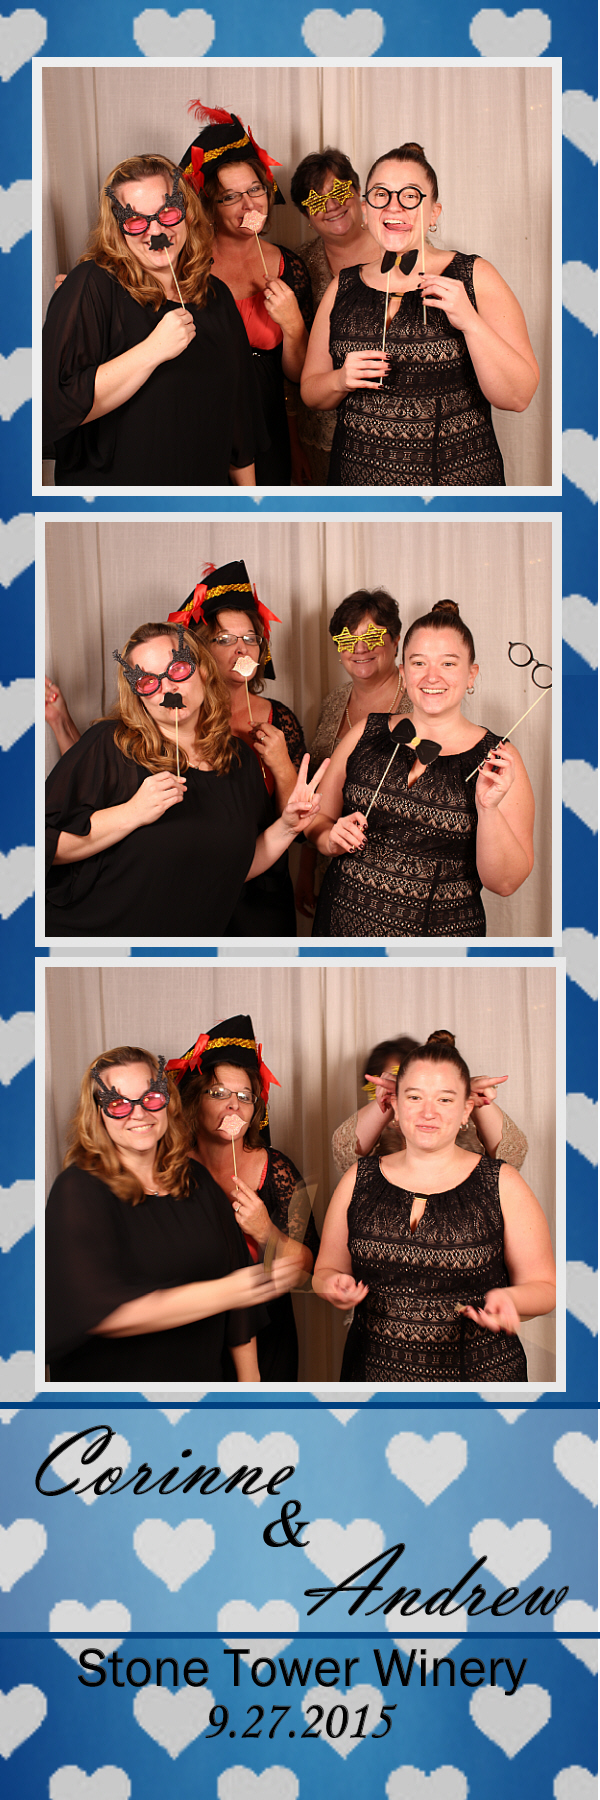 Guest House Events Photo Booth C&A (29).jpg